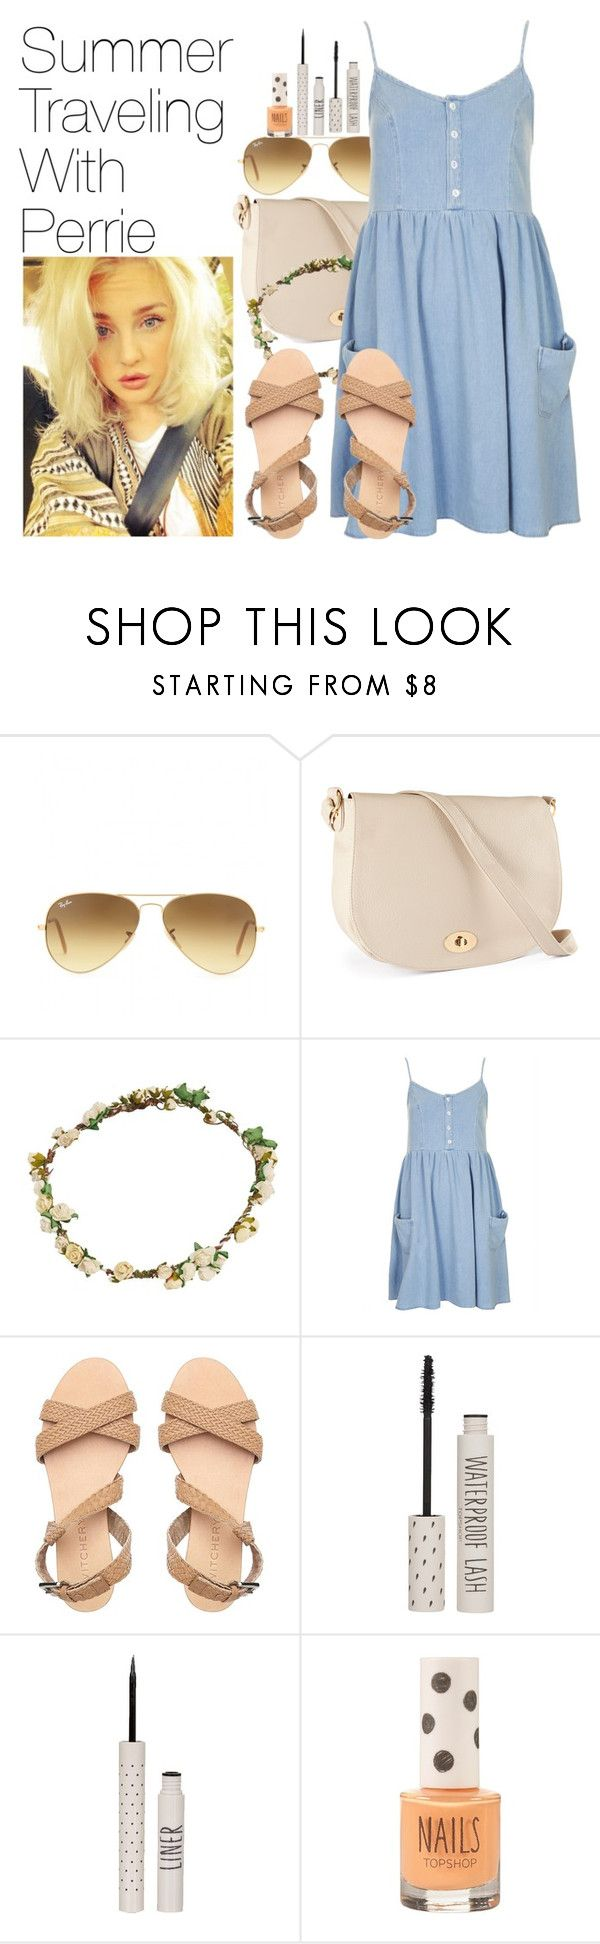 """""""Summer Traveling With Perrie"""" by onedirectionimagineoutfits99 ❤ liked on Polyvore featuring Ray-Ban, H&M, Bundle MacLaren Millinery, Topshop and mix-style"""